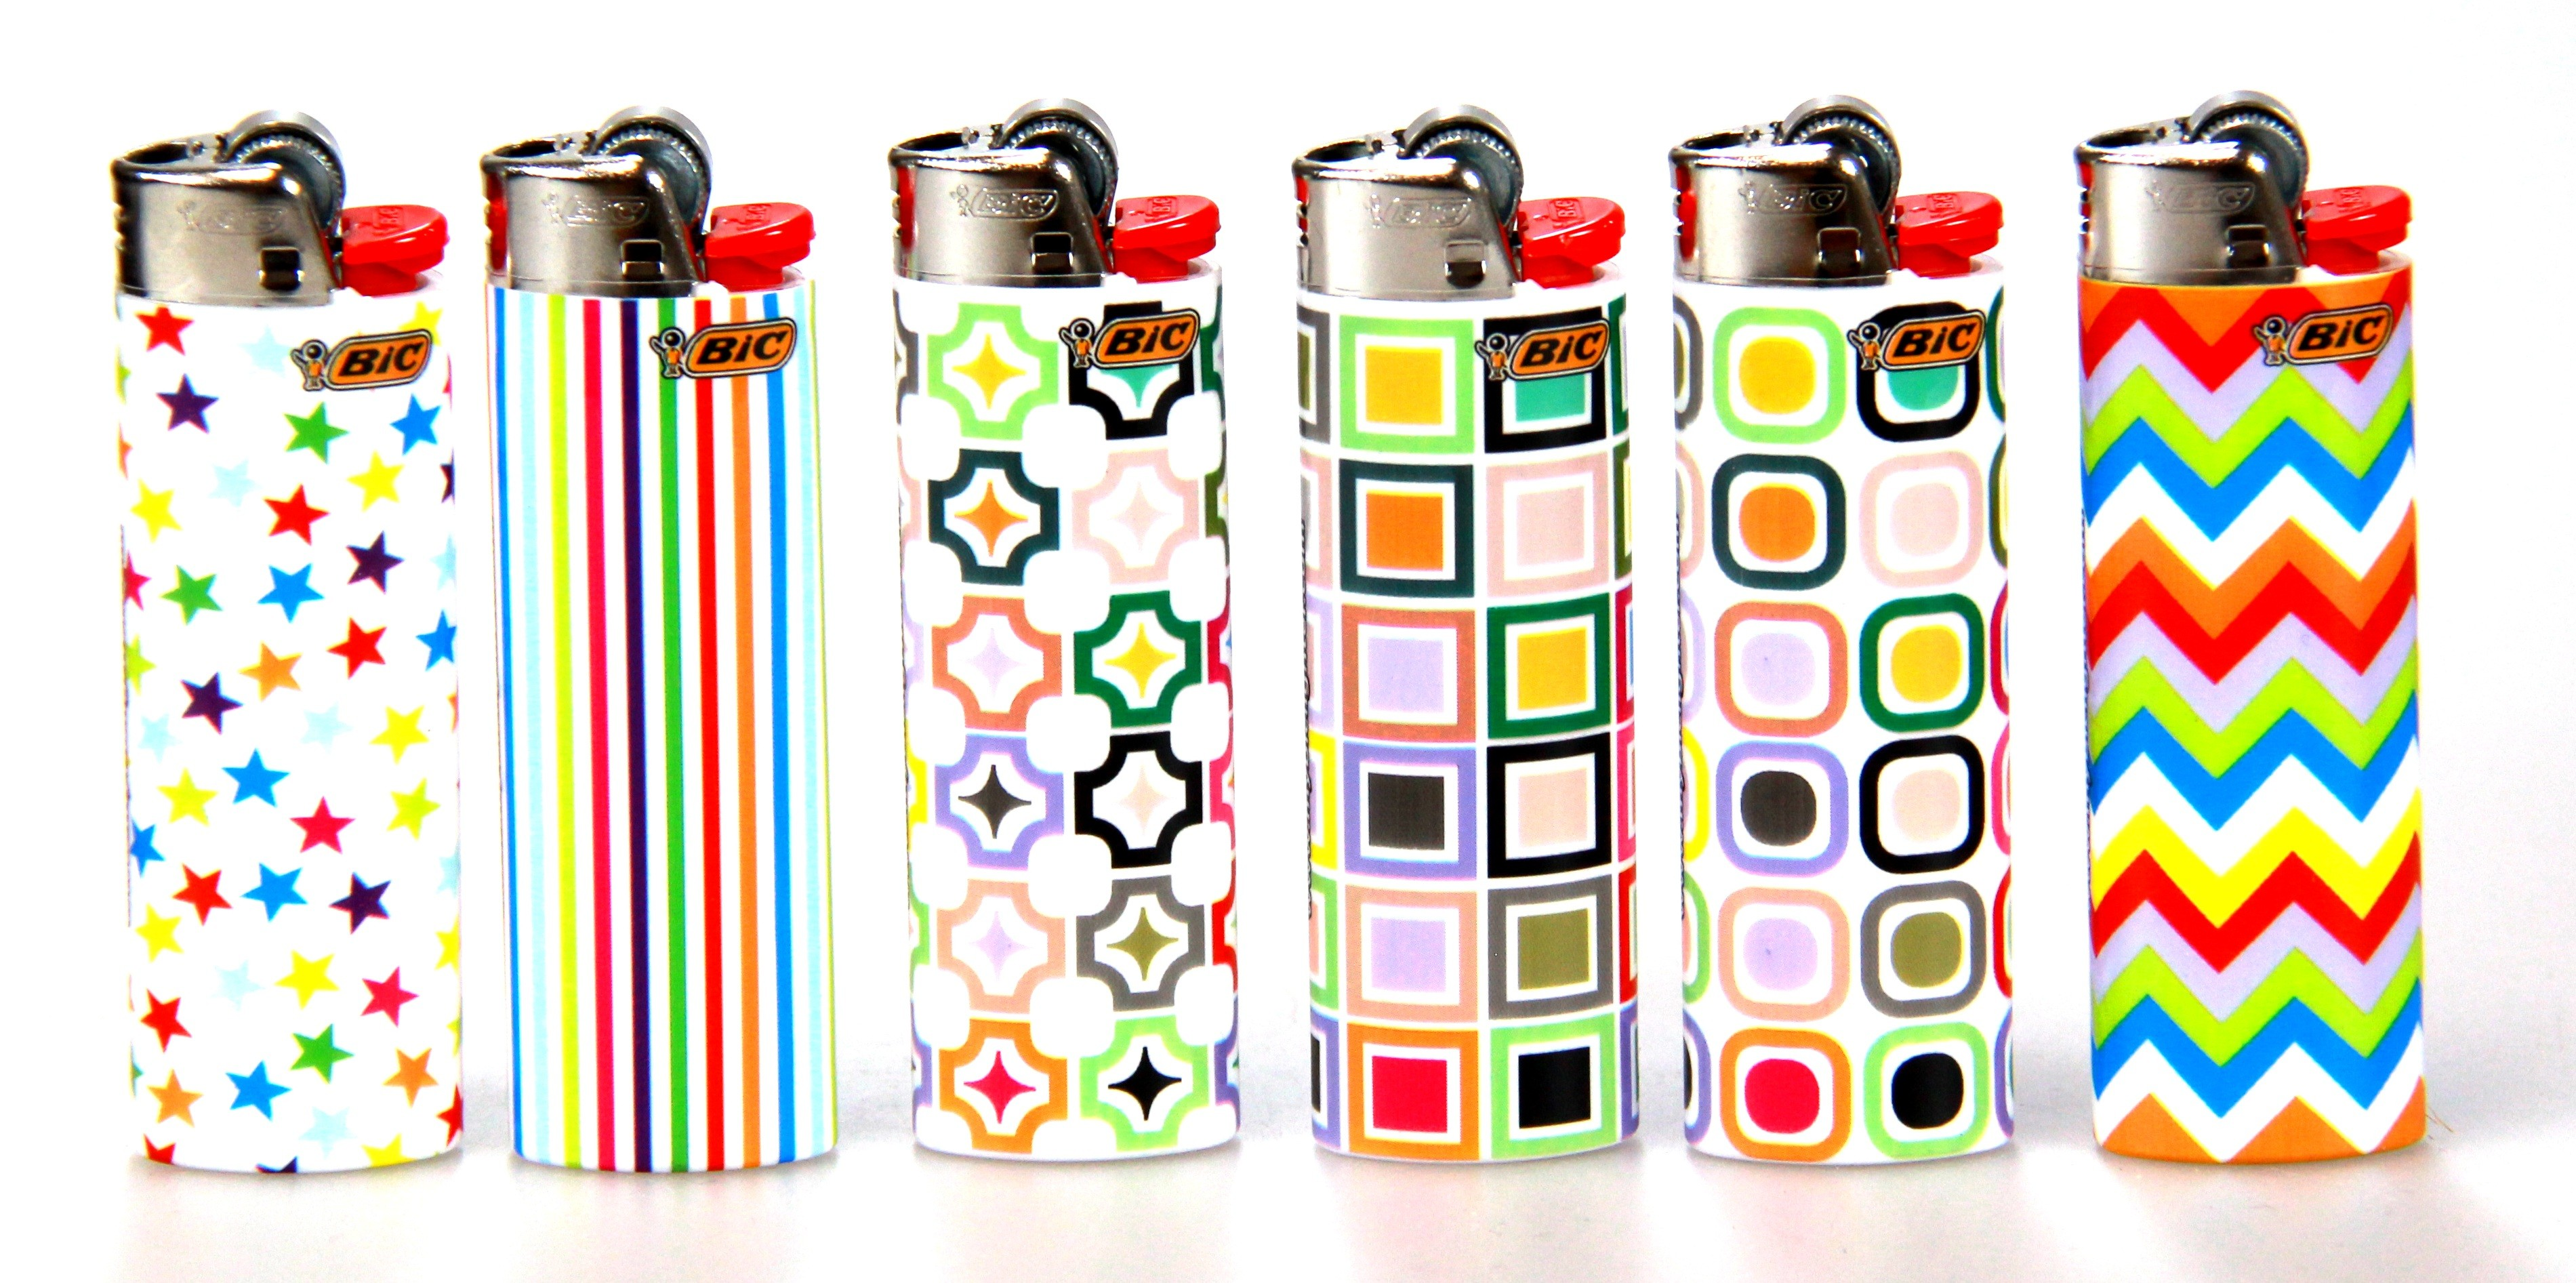 bic print design on fire disposable lighters products peleguy